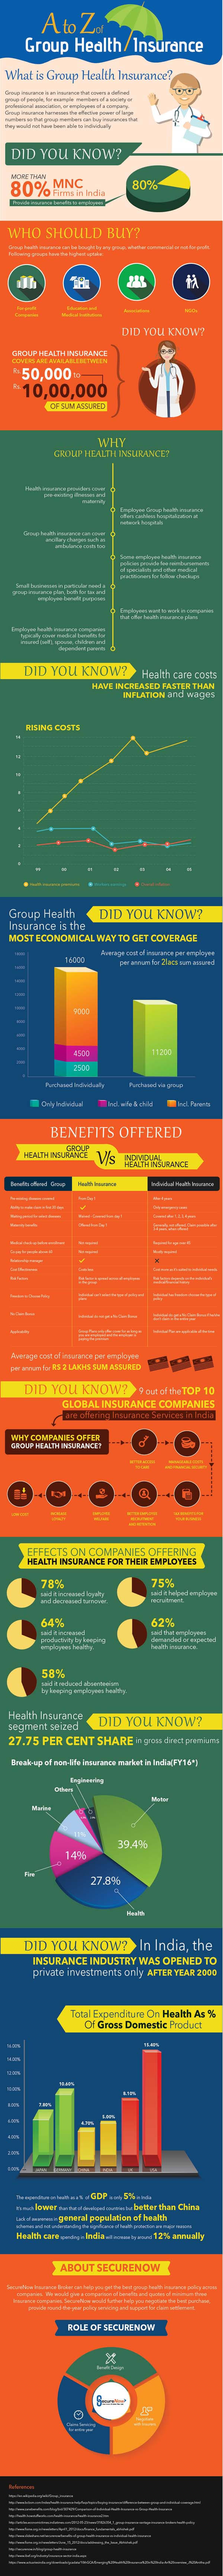 infographic group health insurance